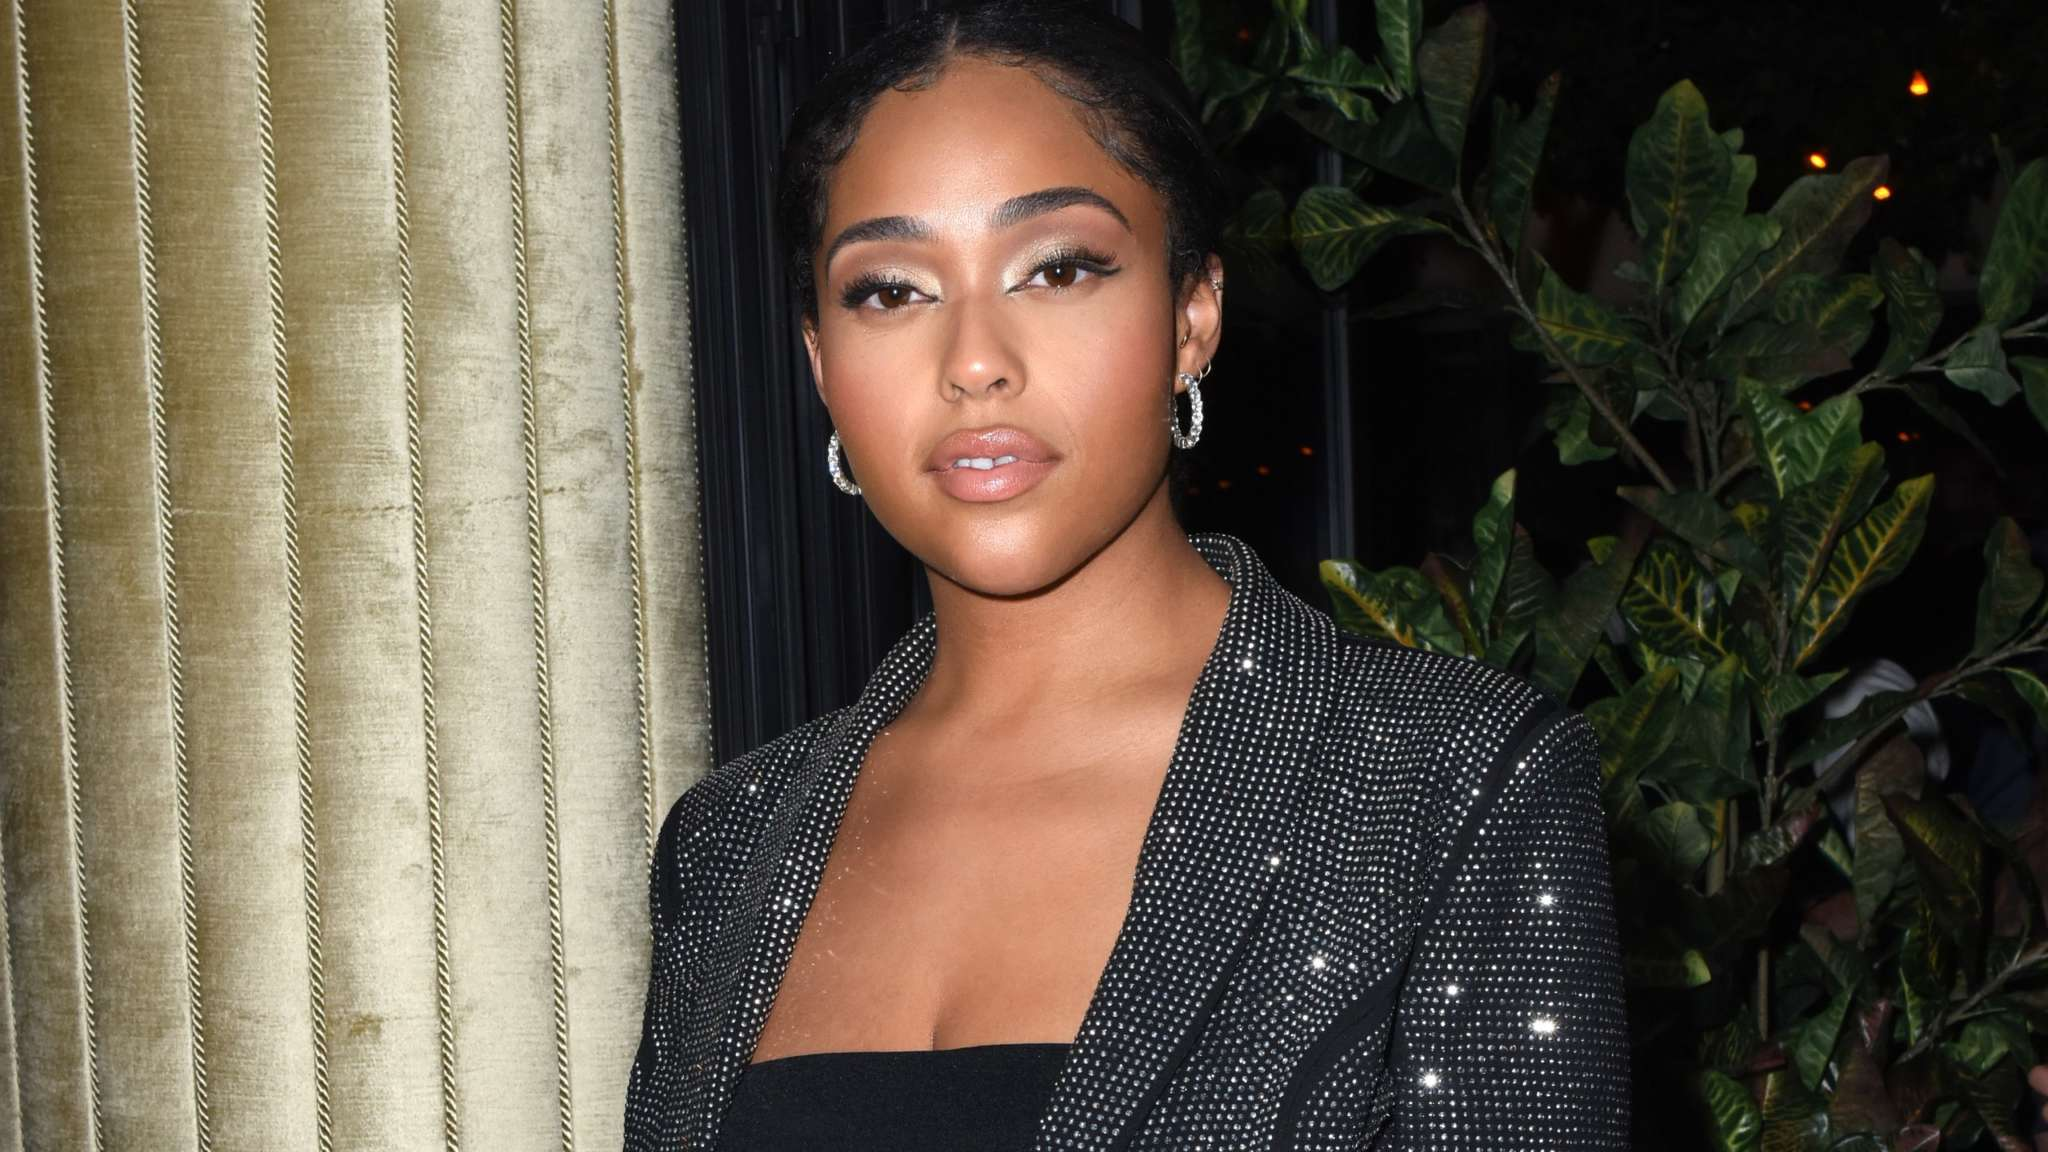 Jordyn Woods Breaks The Internet With This Video In Which She's Showing A Lot Of Skin - Tamar Braxton Praises Her